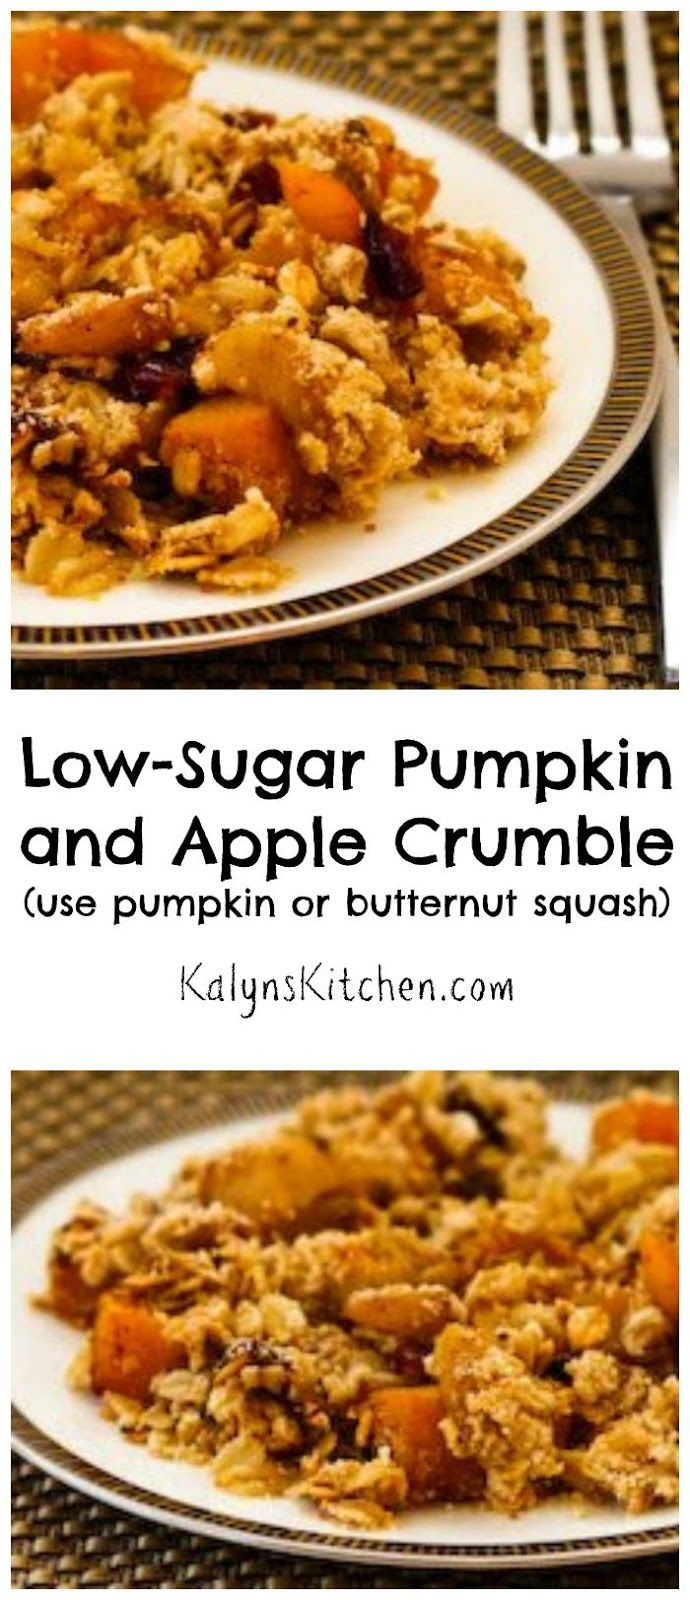 I loved this Low-Sugar Pumpkin and Apple Crumble; perfect for a fall dessert.   [found on KalynsKitchen.com]